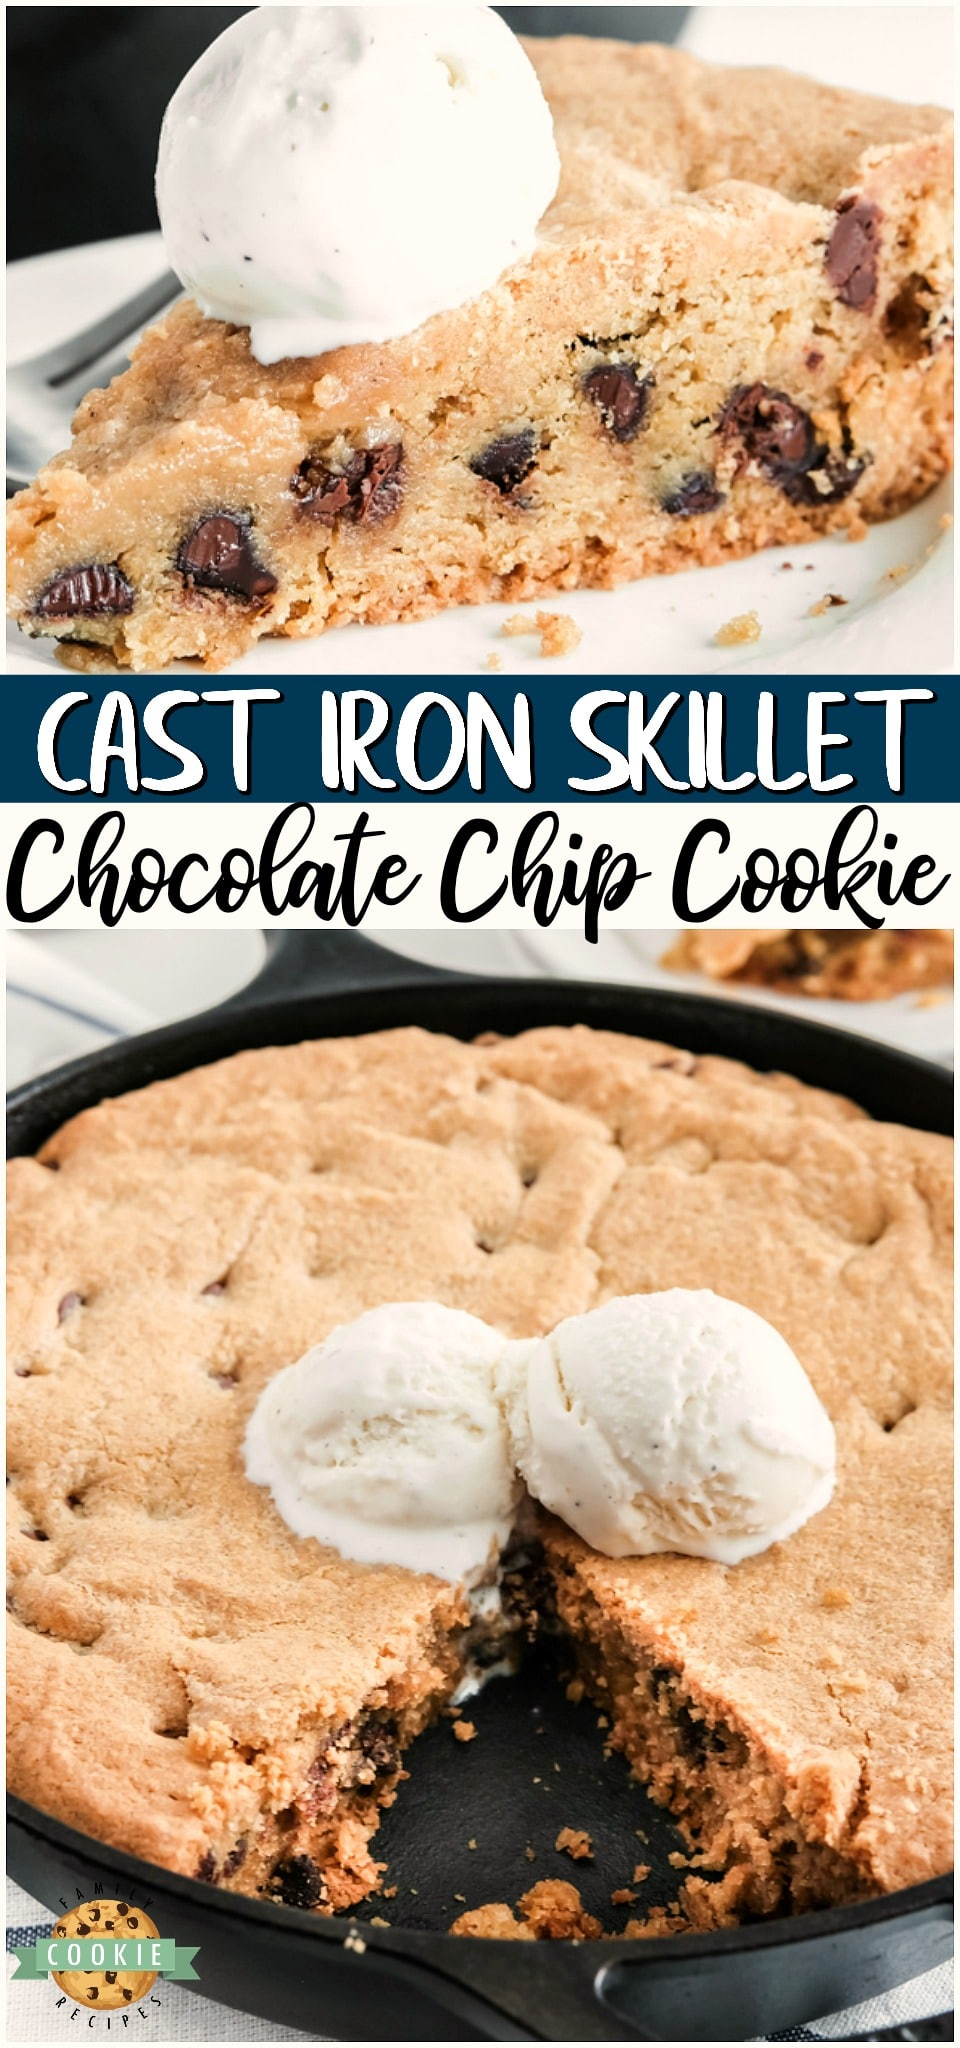 Cast Iron Skillet Cookie made with chocolate chip cookie dough, then baked in a skillet & topped with vanilla ice cream. Easy skillet cookie recipe for cookie lovers!